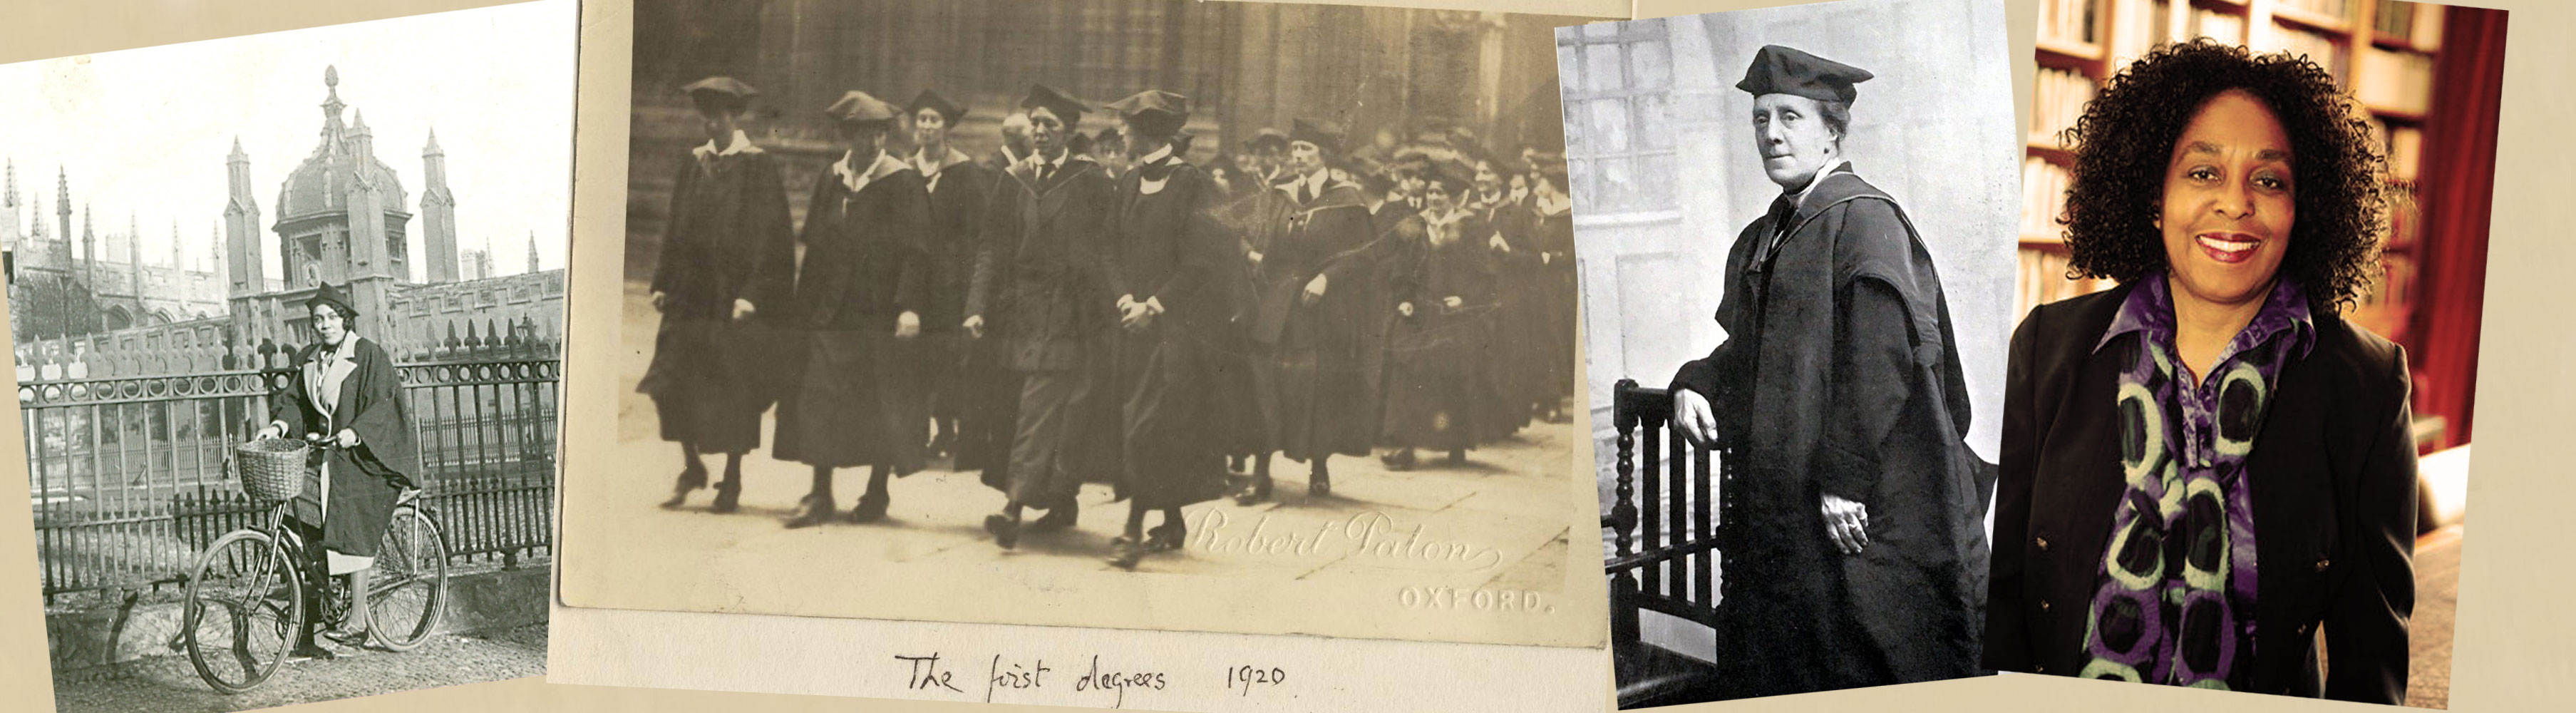 Timeline, 100 years of women's history at Oxford